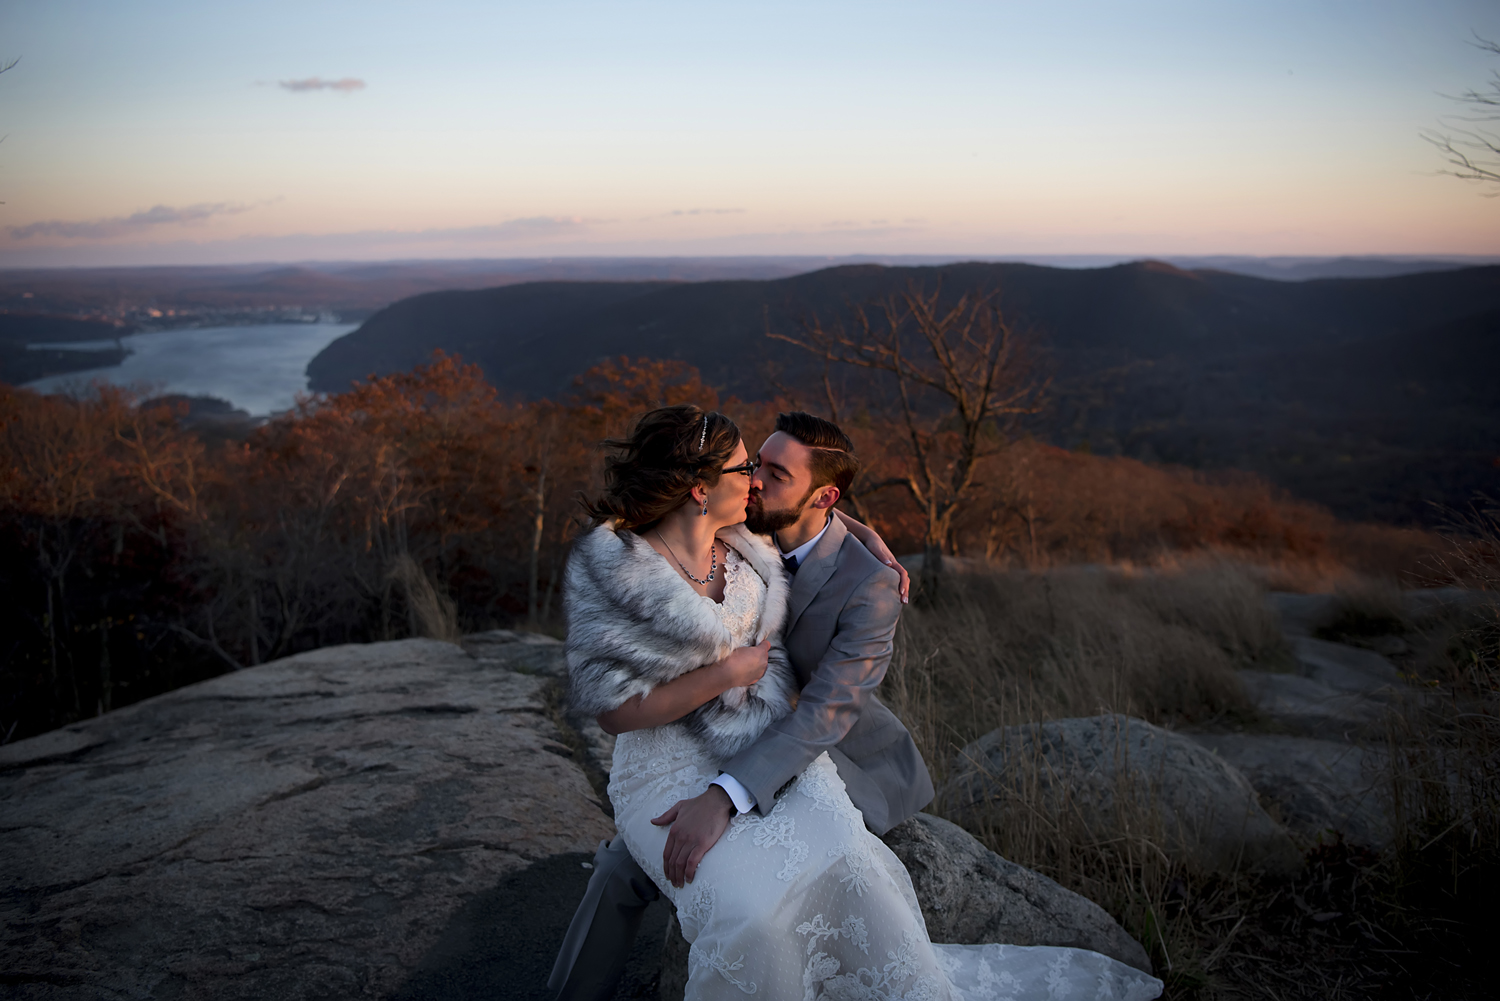 bride and groom kissing against the sunset sky at Bear Mountiain on their wedding day